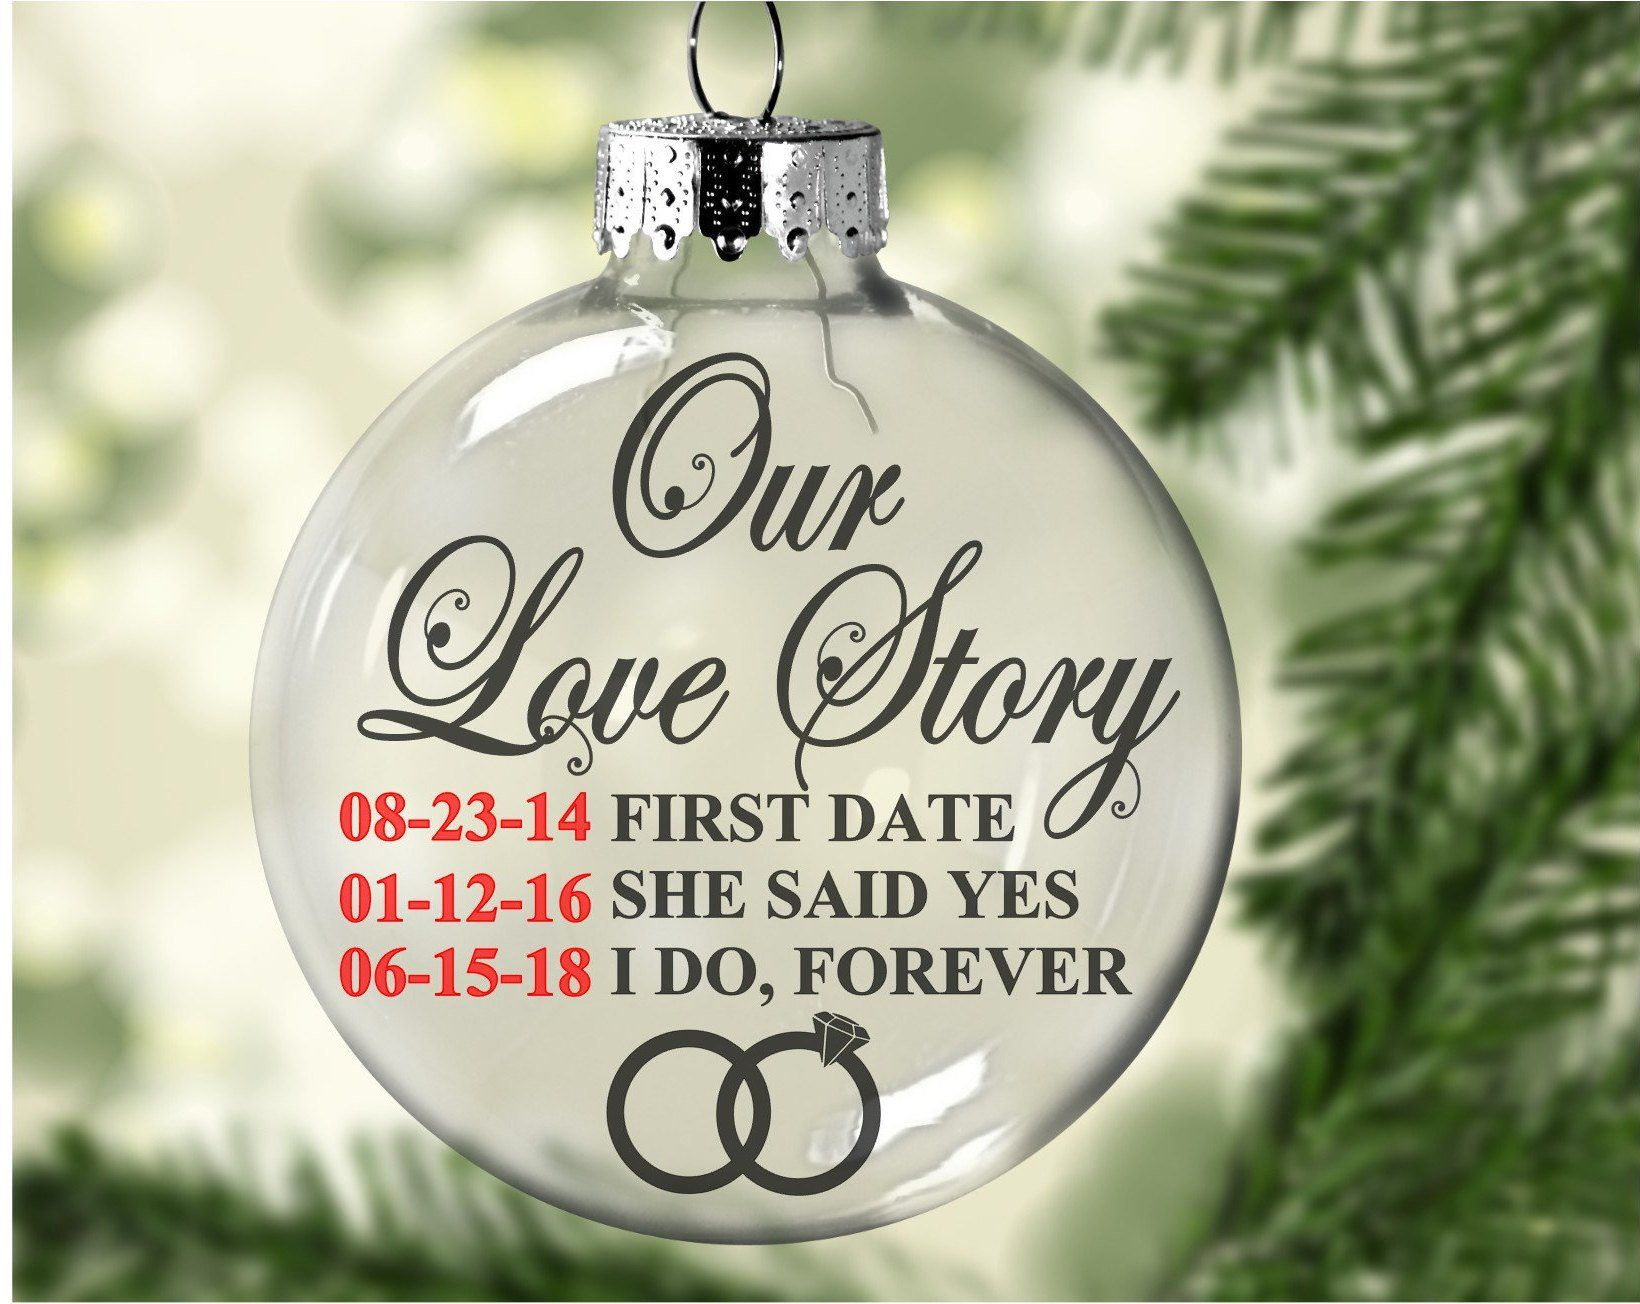 Floating Our Love Story Personalized Ornament Etsy Personalized Ornaments Christmas Ornaments Homemade Clear Christmas Ornaments